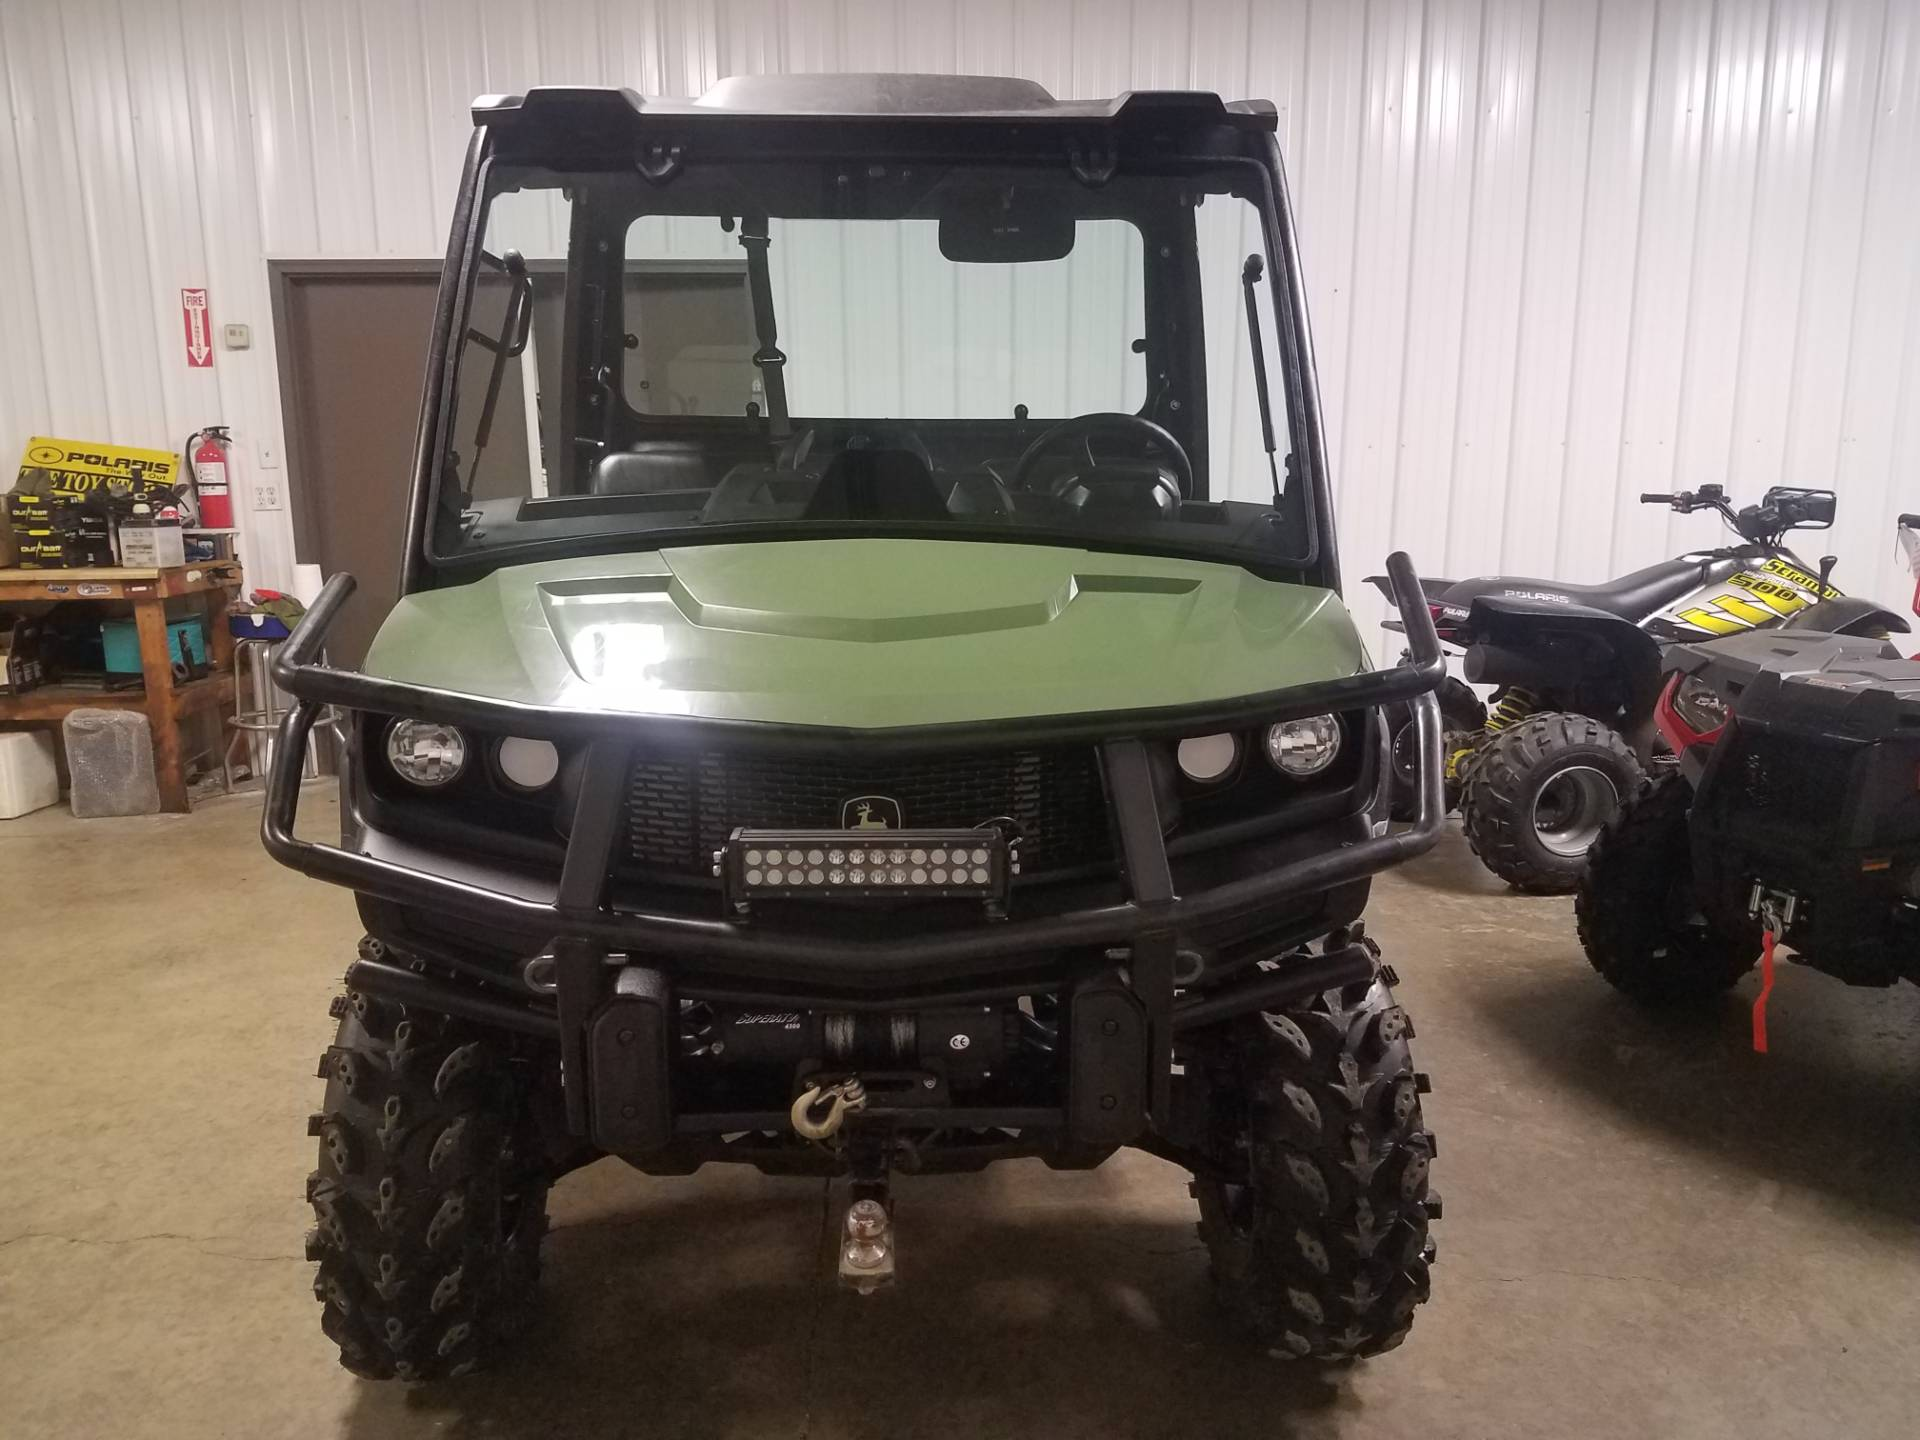 Used 2018 John Deere Gator Xuv835m Utility Vehicles In Thornville Oh